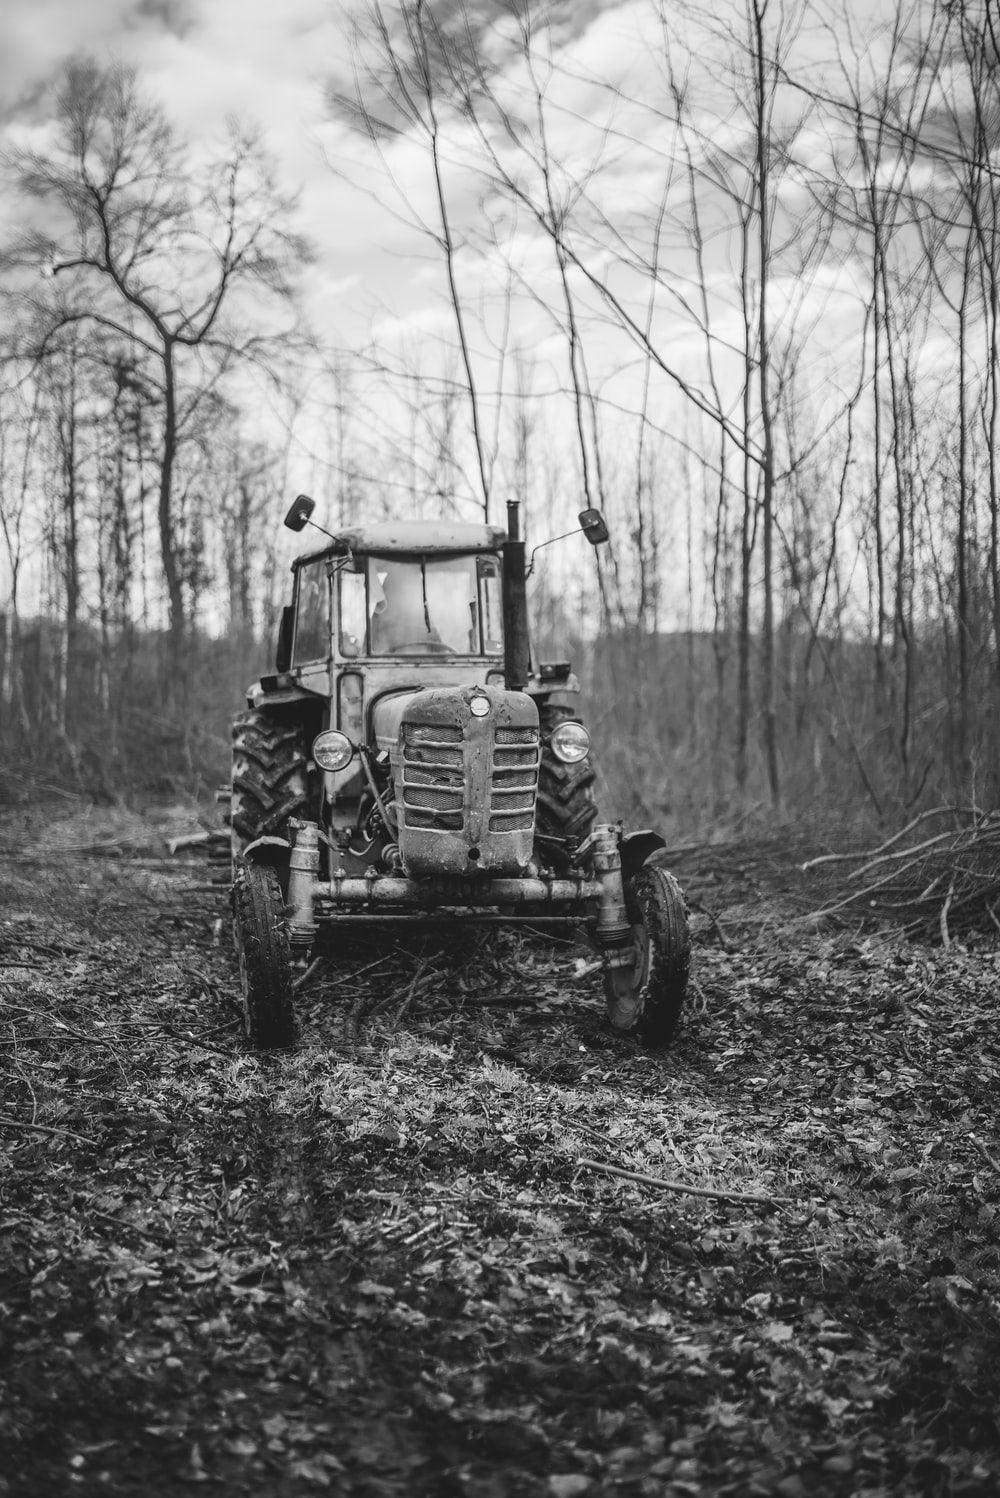 grayscale photo of tractor in forest